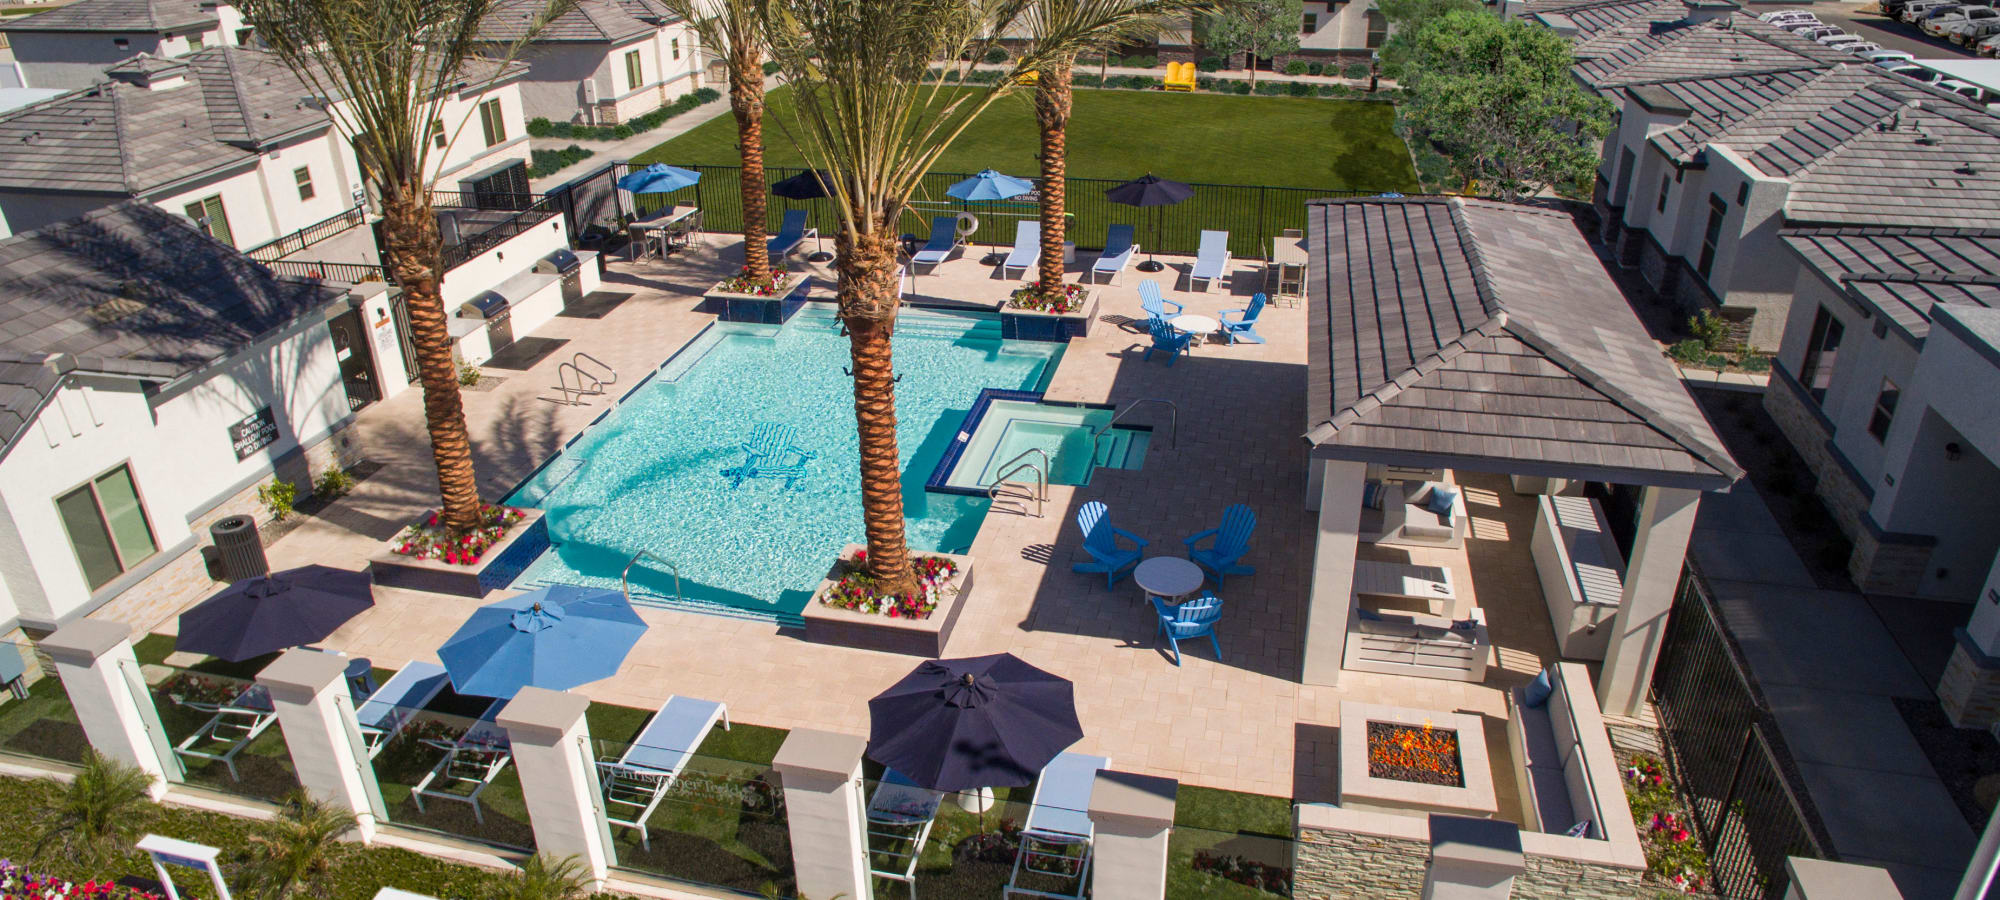 Aerial view of the pool area at Christopher Todd Communities At Stadium in Glendale, Arizona